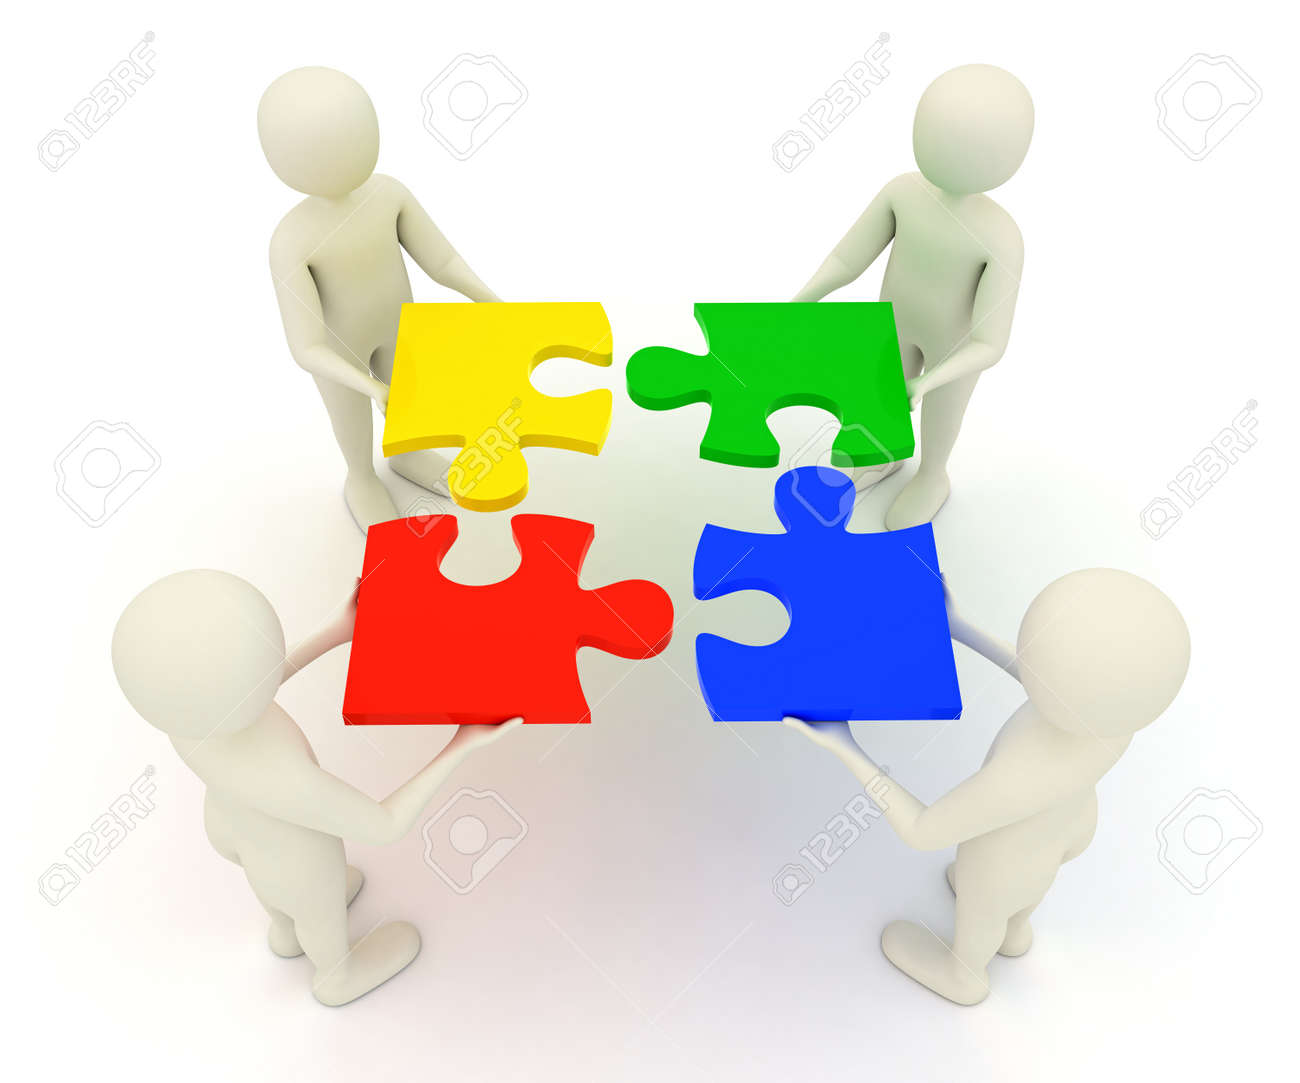 Jigsaw Puzzle Pieces Coming Together Jigsaw Puzzle Pieces Stock